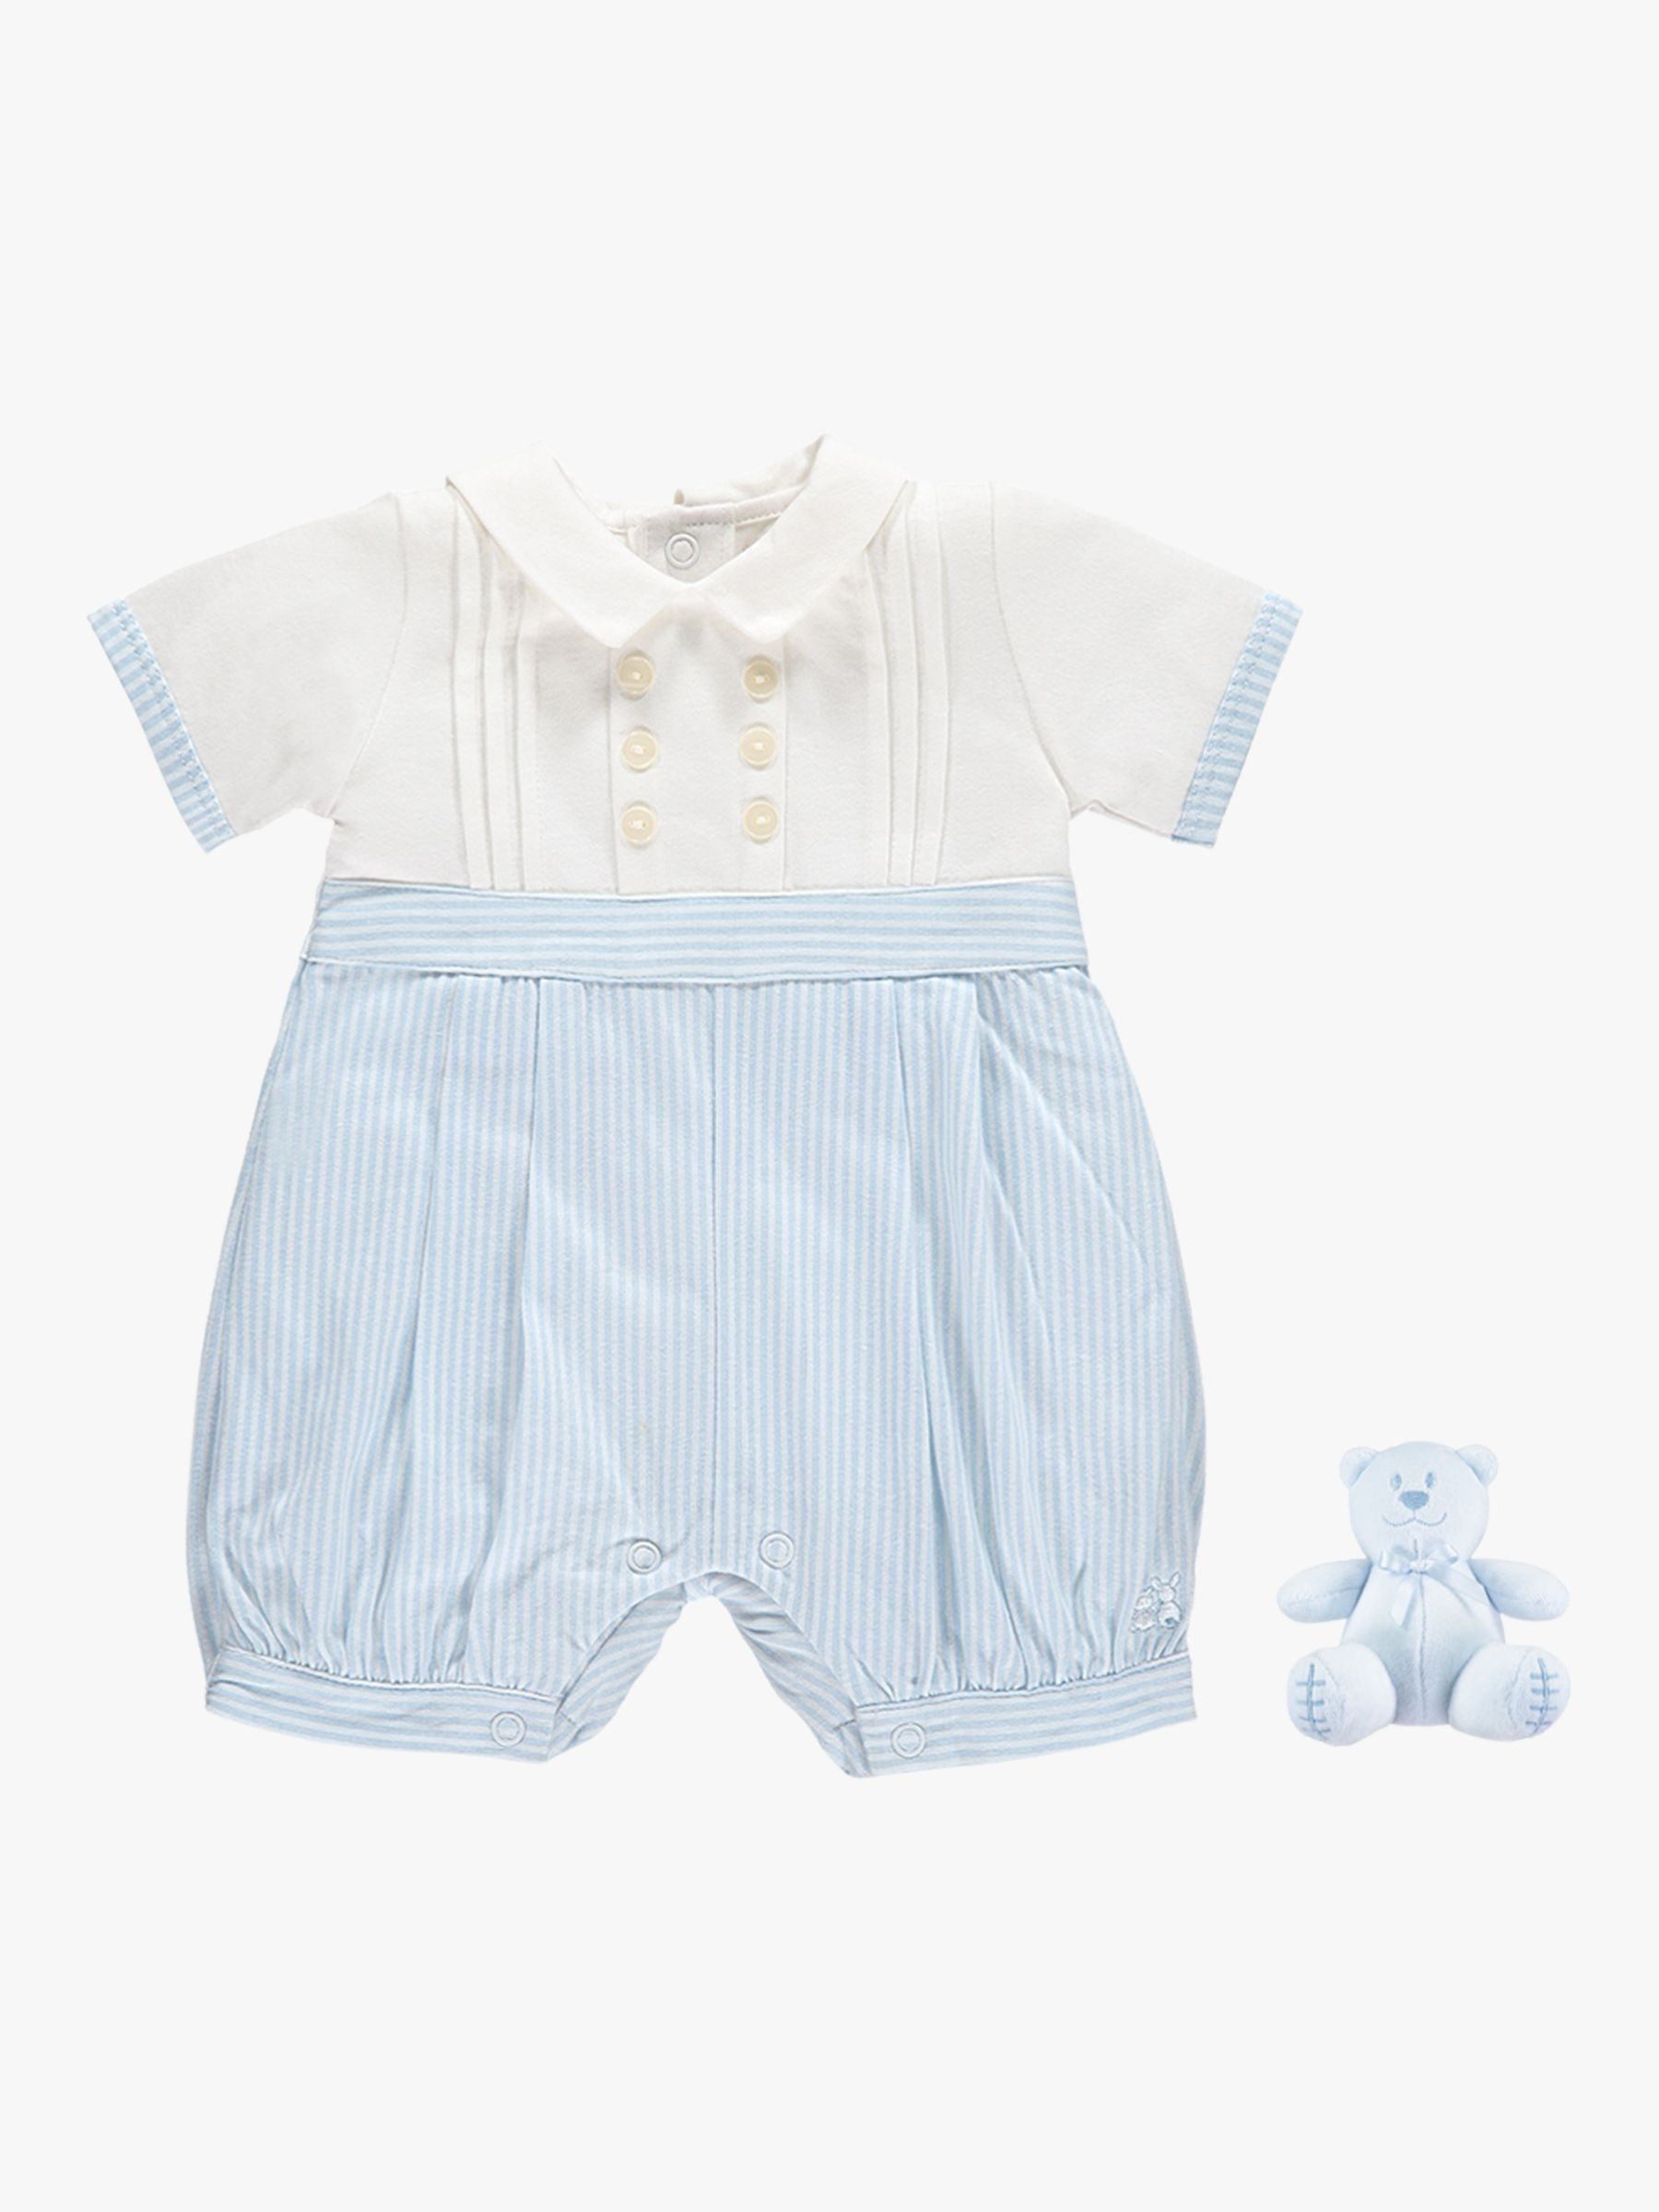 Emile et Rose Emile et Rose Saul Striped Romper, Pale Blue/White